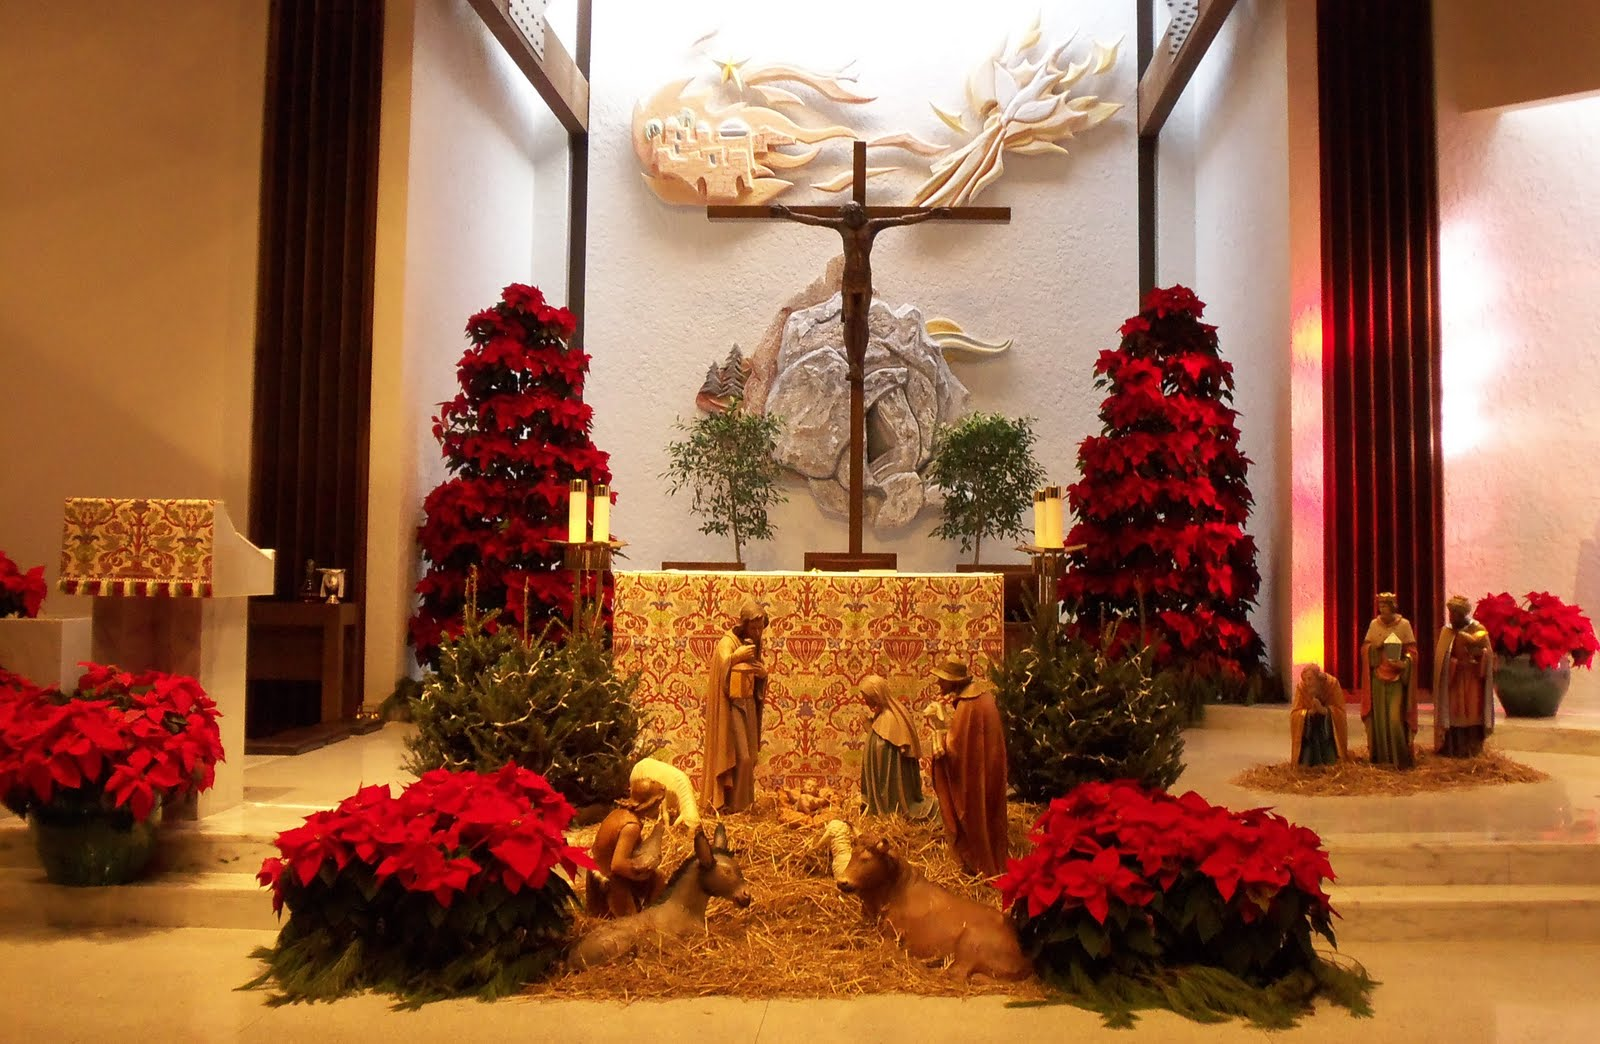 on christmas day i was astounded at how beautiful i thought our church looked decorated for christmas